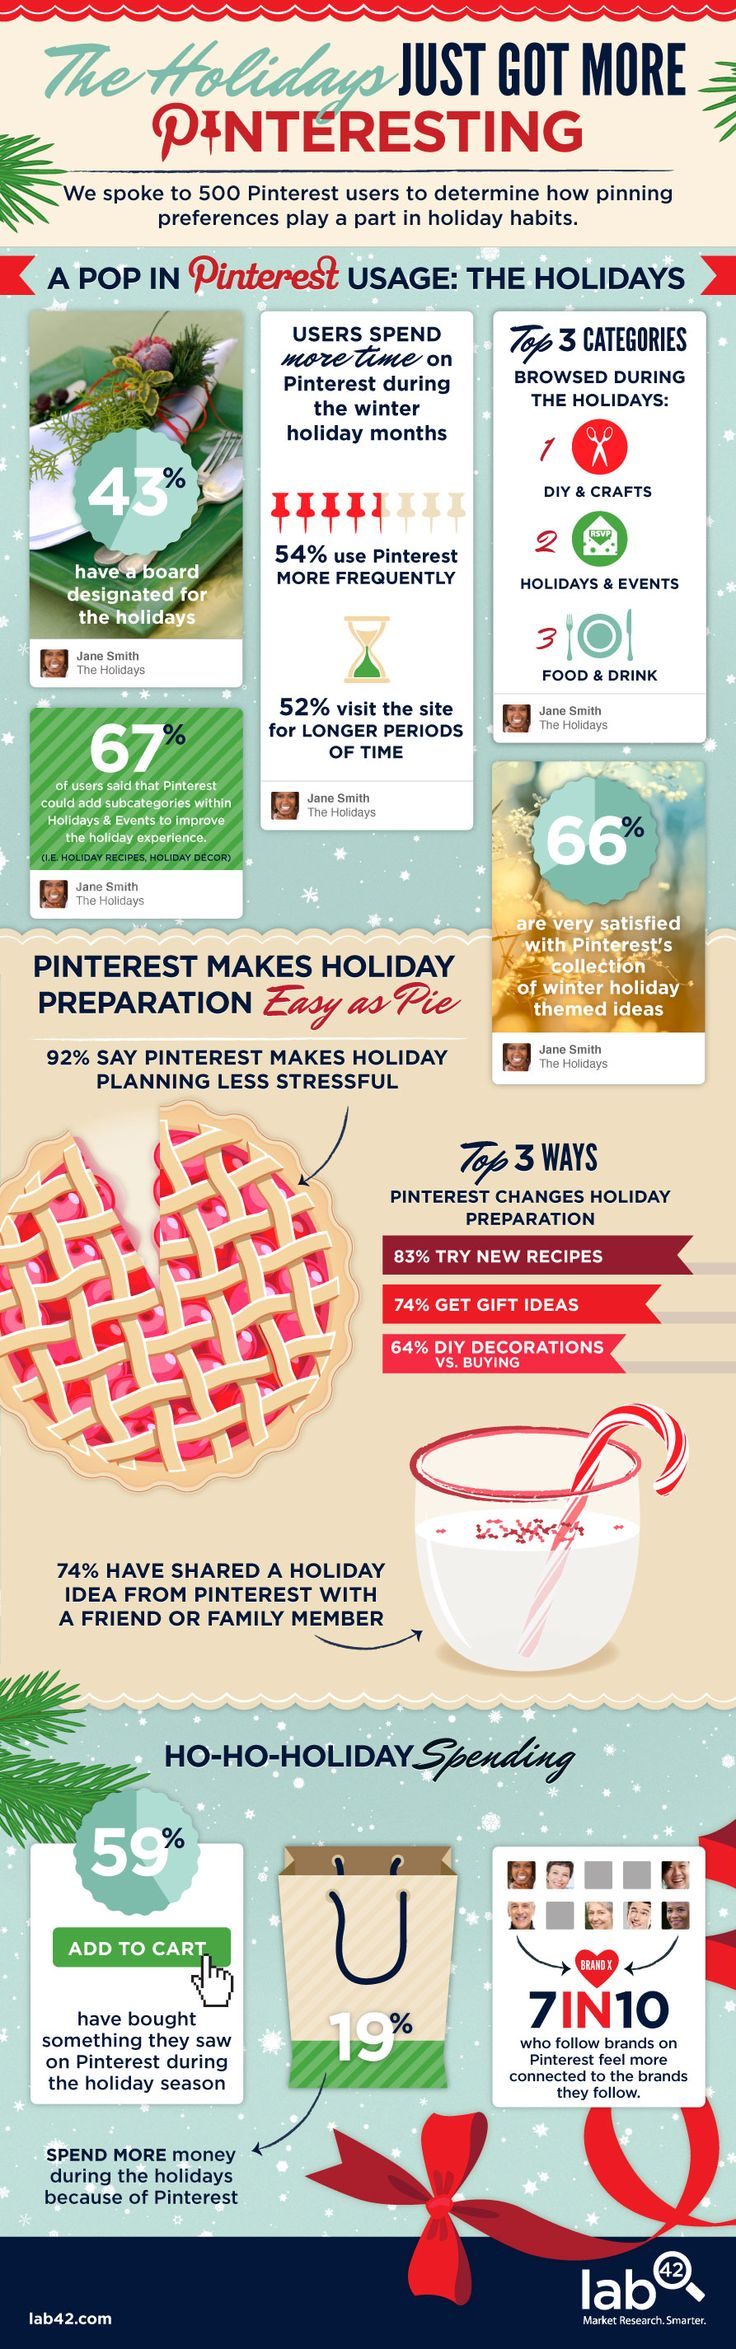 About 92% Of Pinterest Users Claimed That Their Holiday Shopping Has Become Less Stressful!